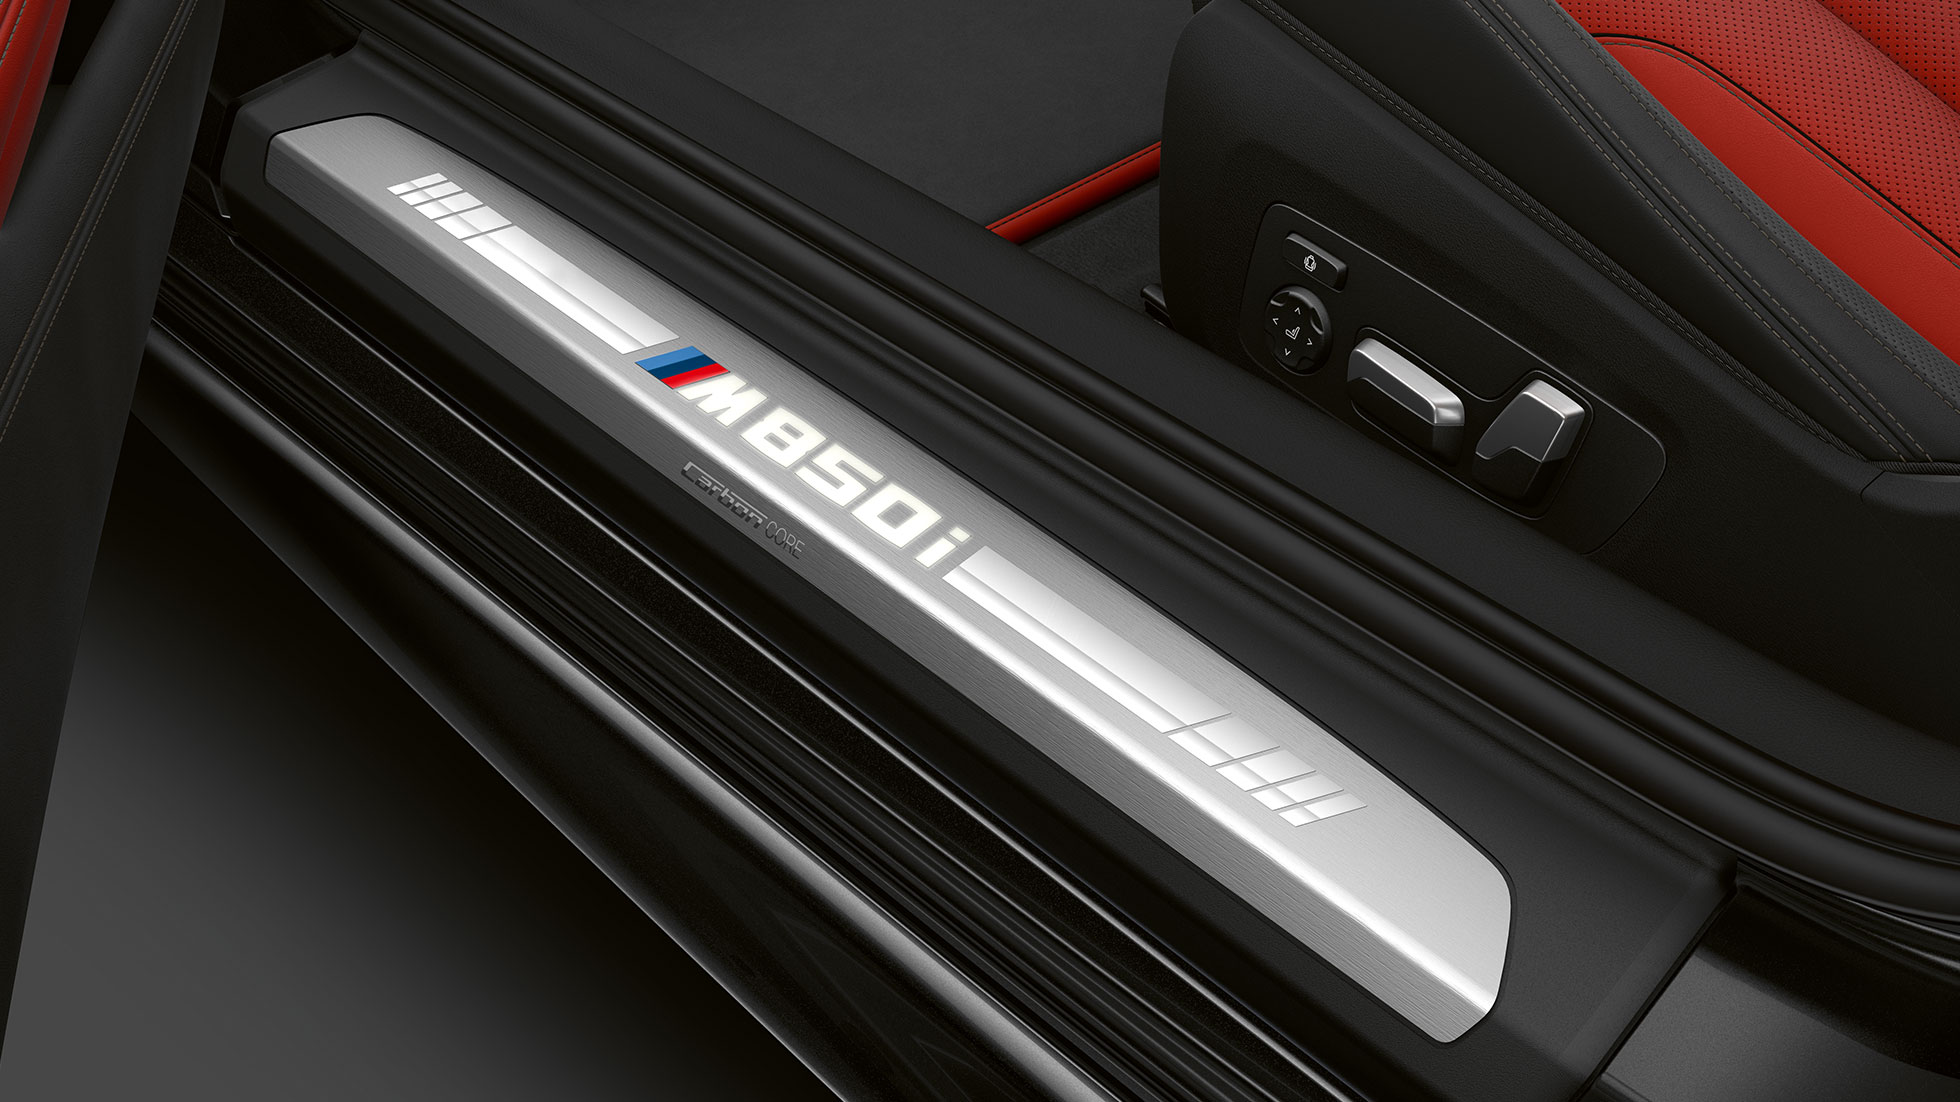 BMW M850i xDrive in Carbonschwarz metallic, dorpellijst.